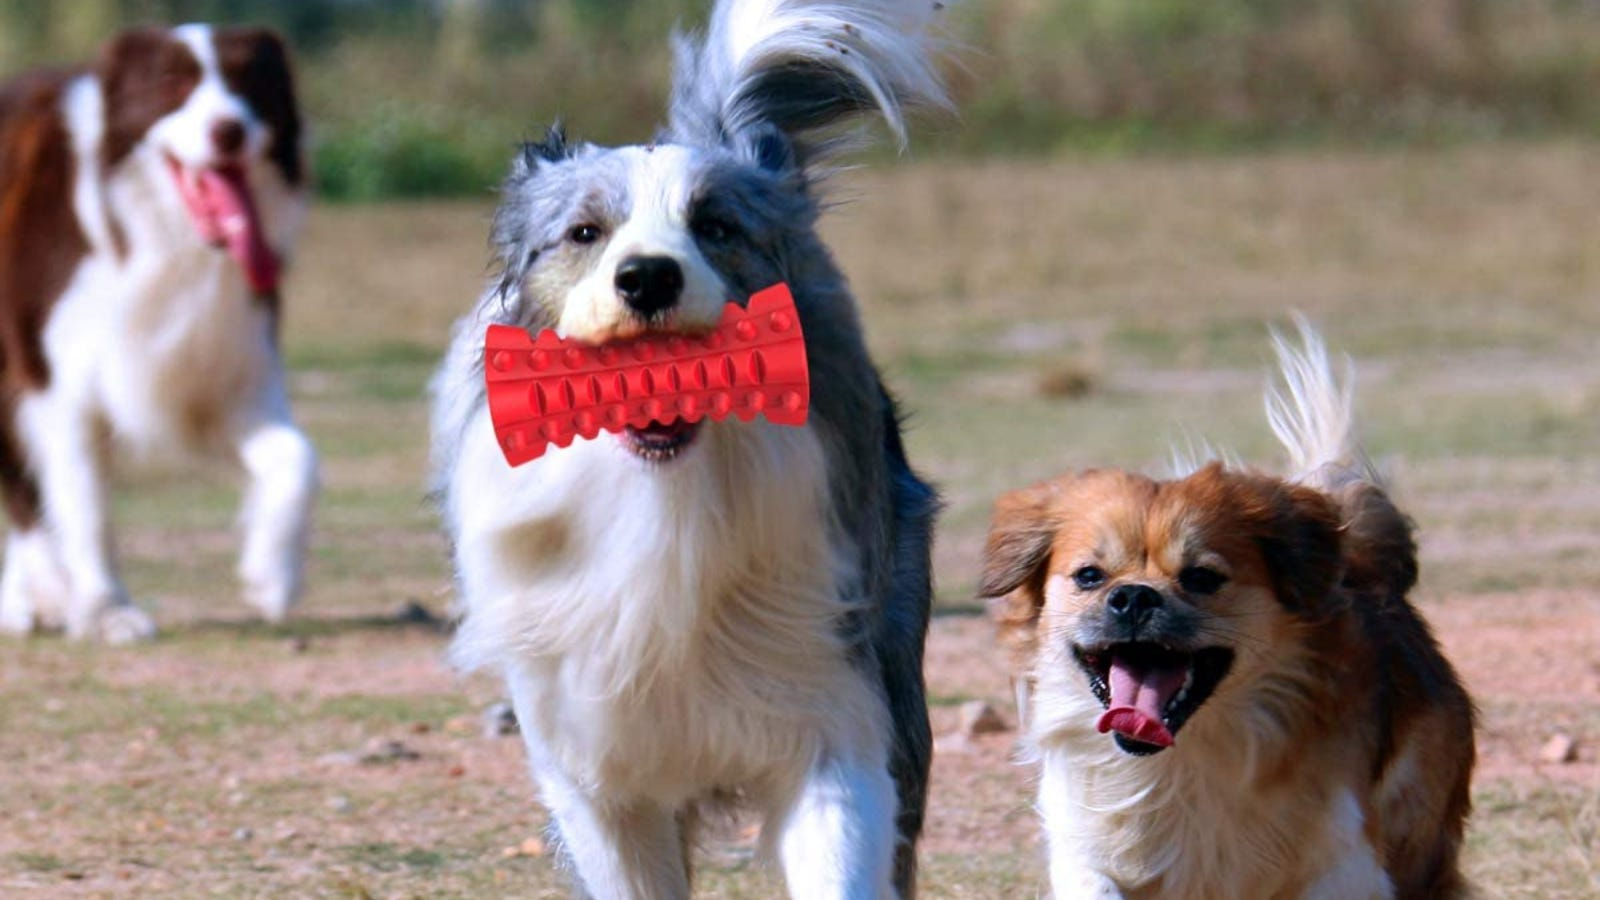 A dog holds a red chew toy in its mouth as it runs ahead of two other dogs.